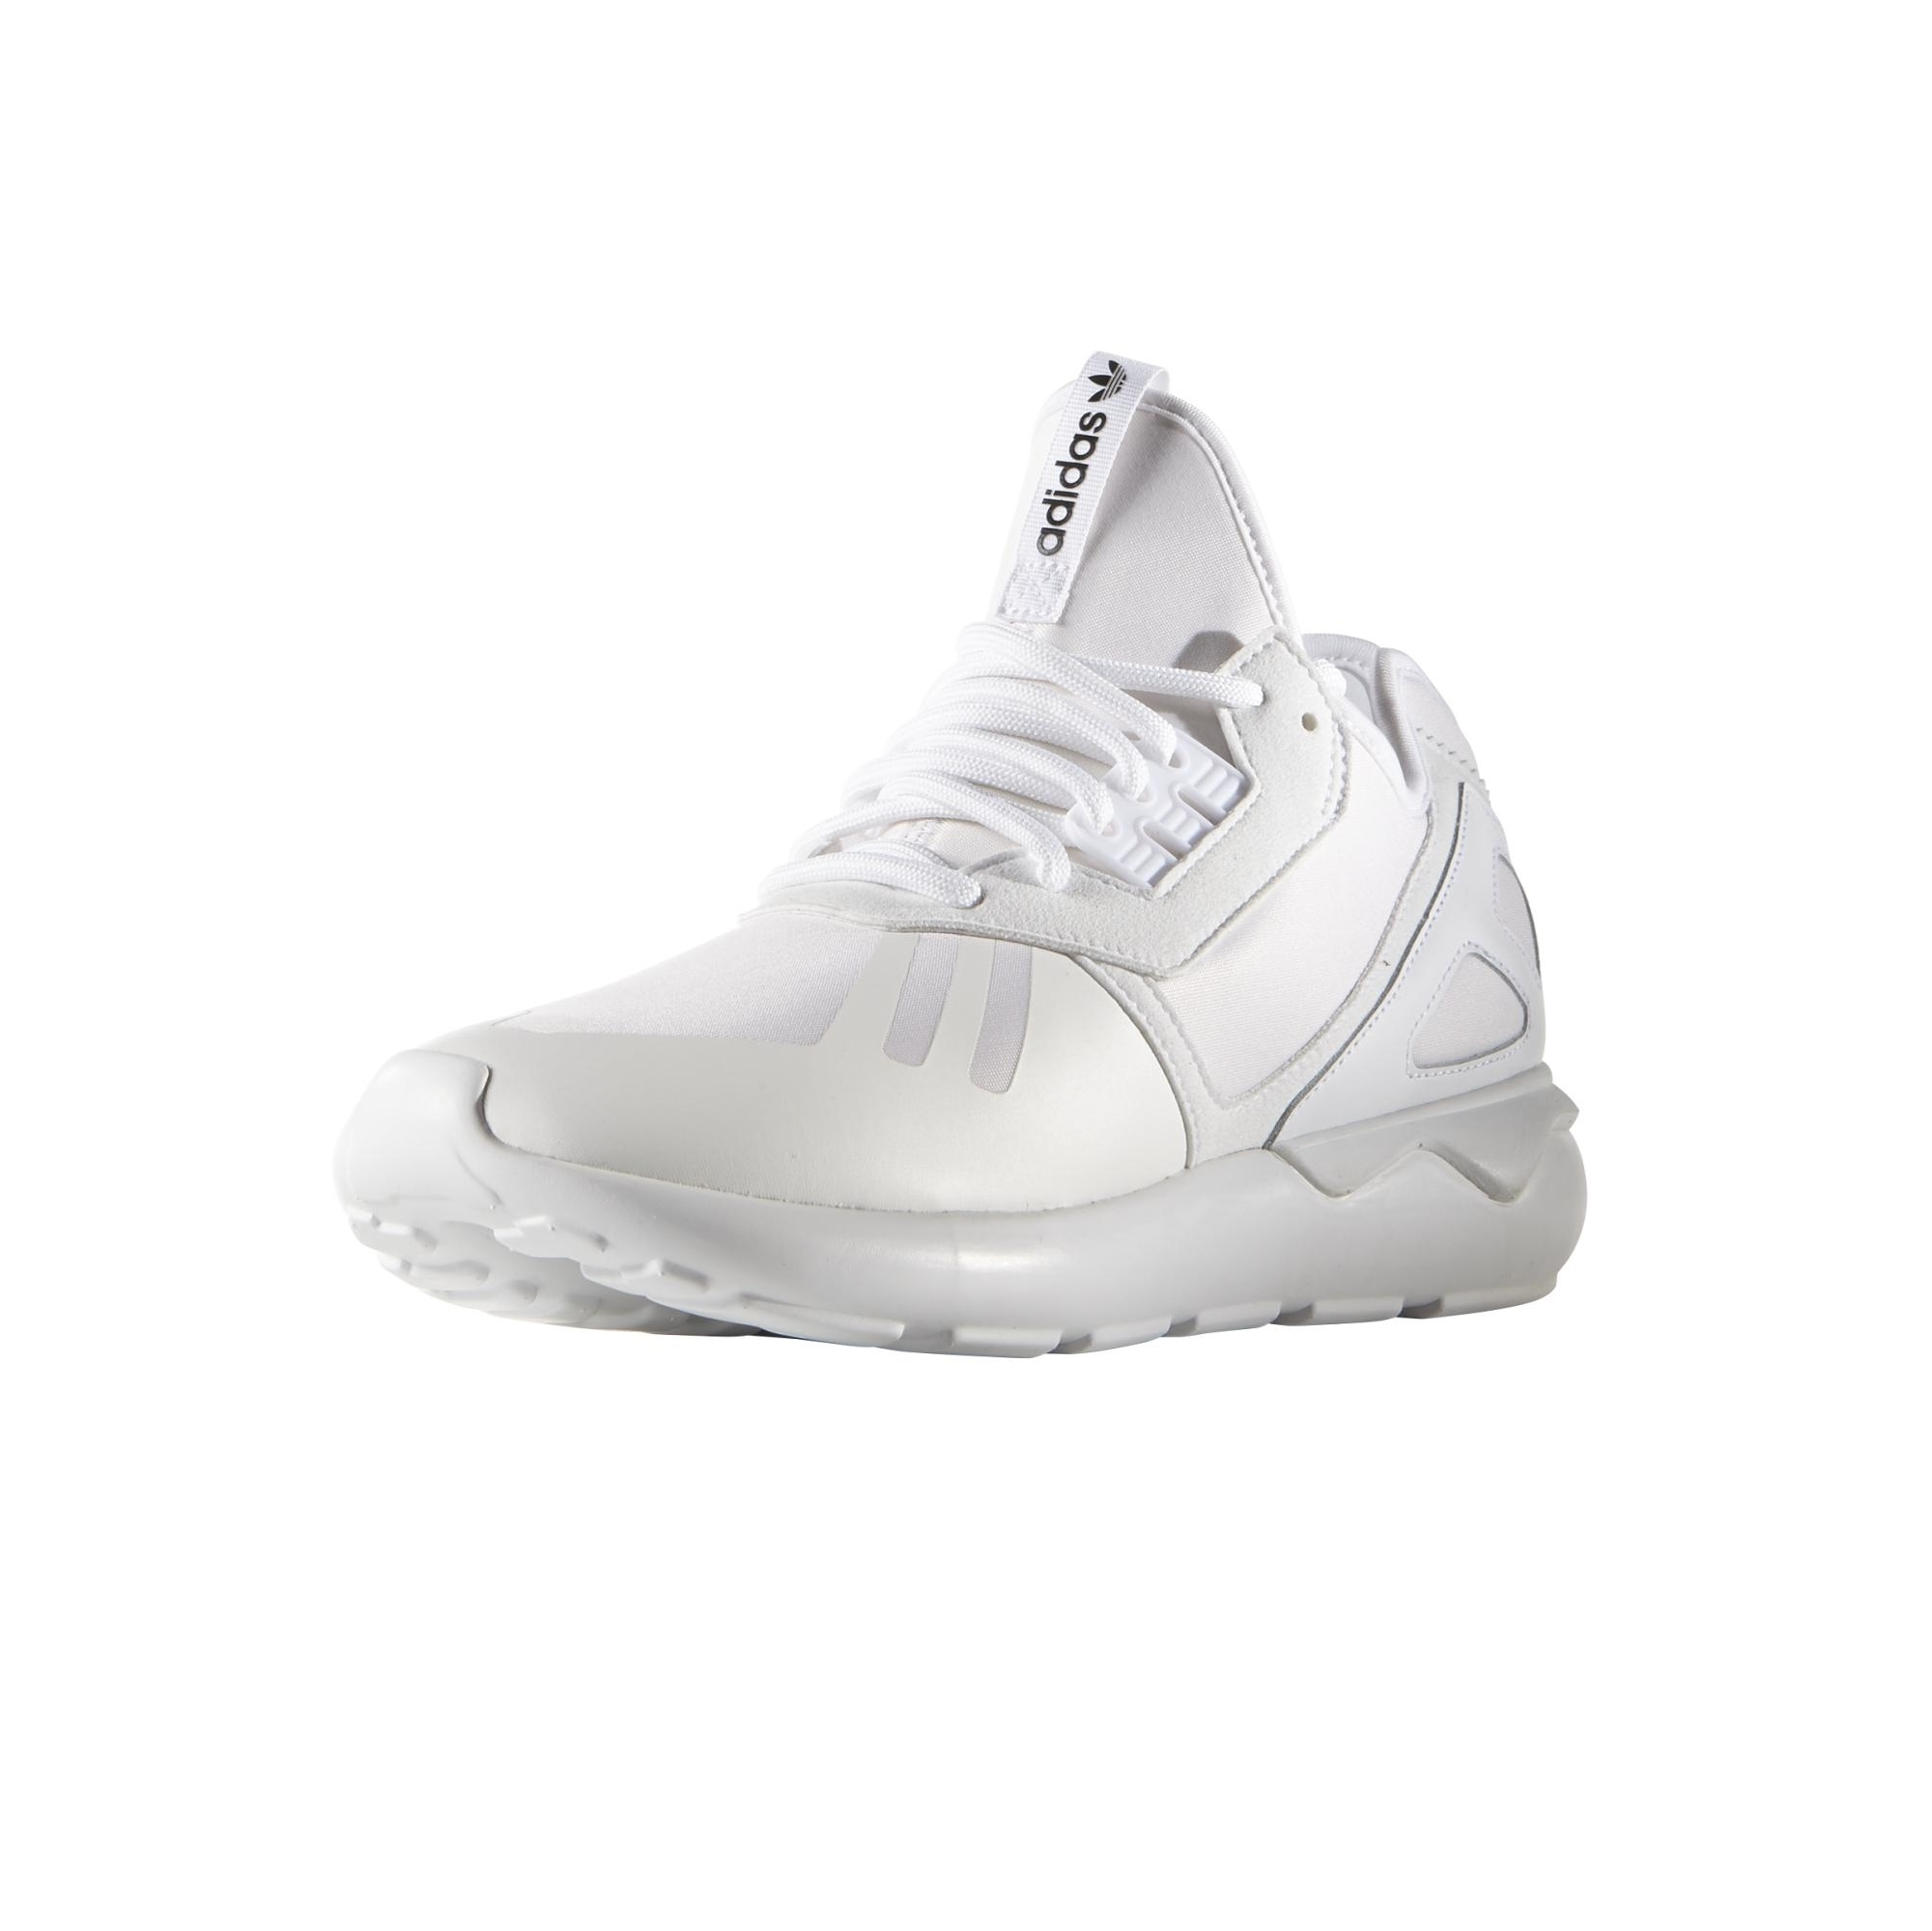 best cheap 367a1 759f8 Adidas Originals Tubular Runner Weave